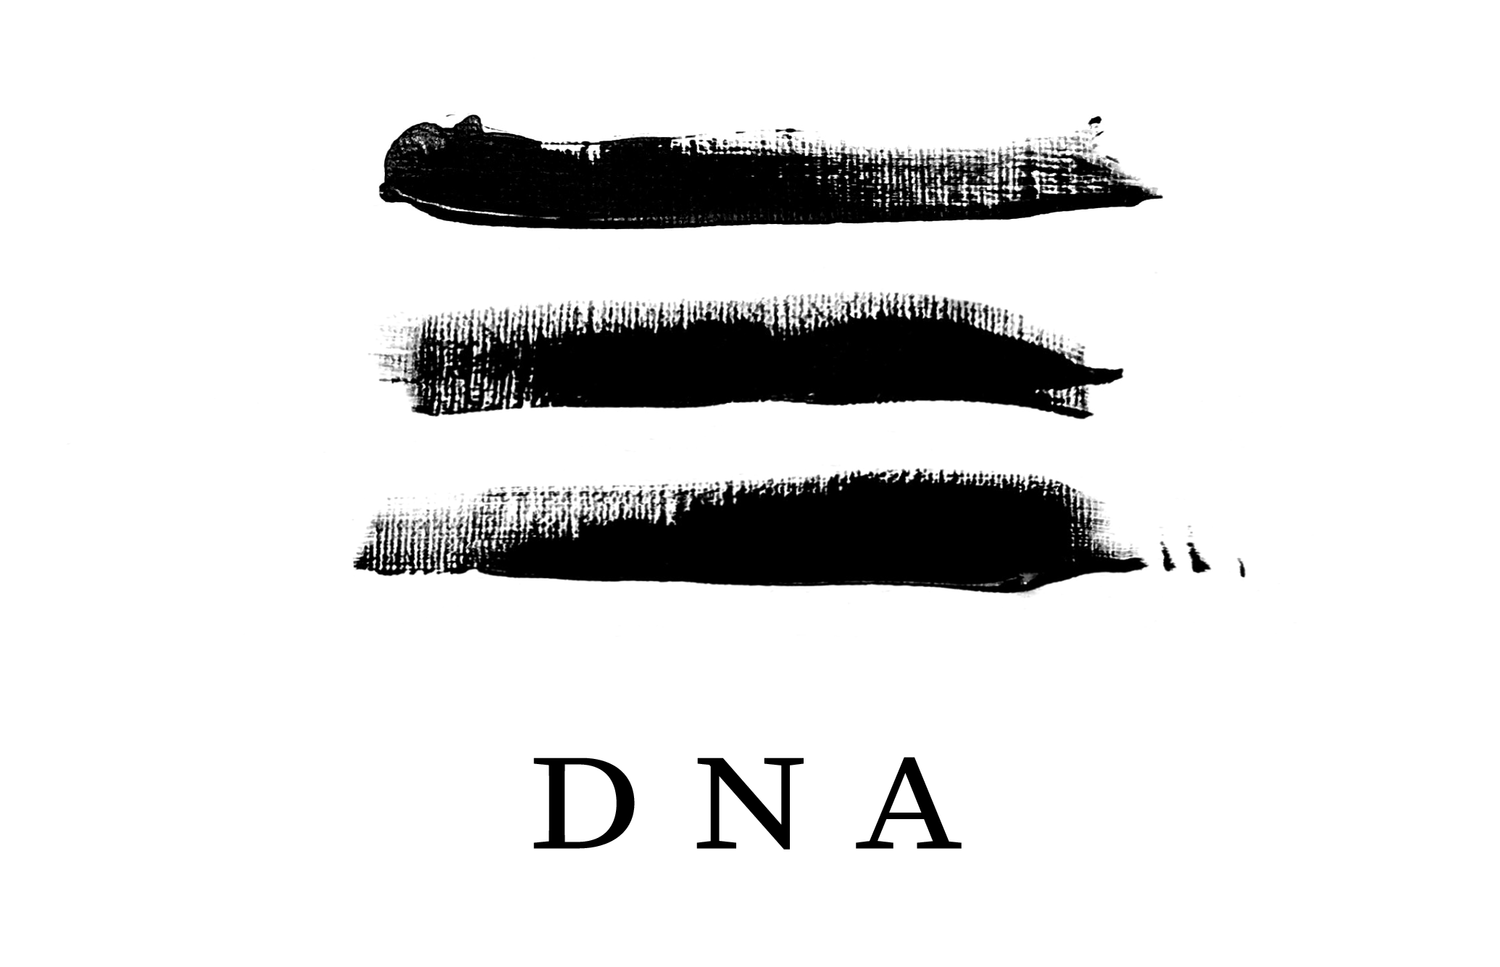 DNA | CREATIVE COLLECTIVE